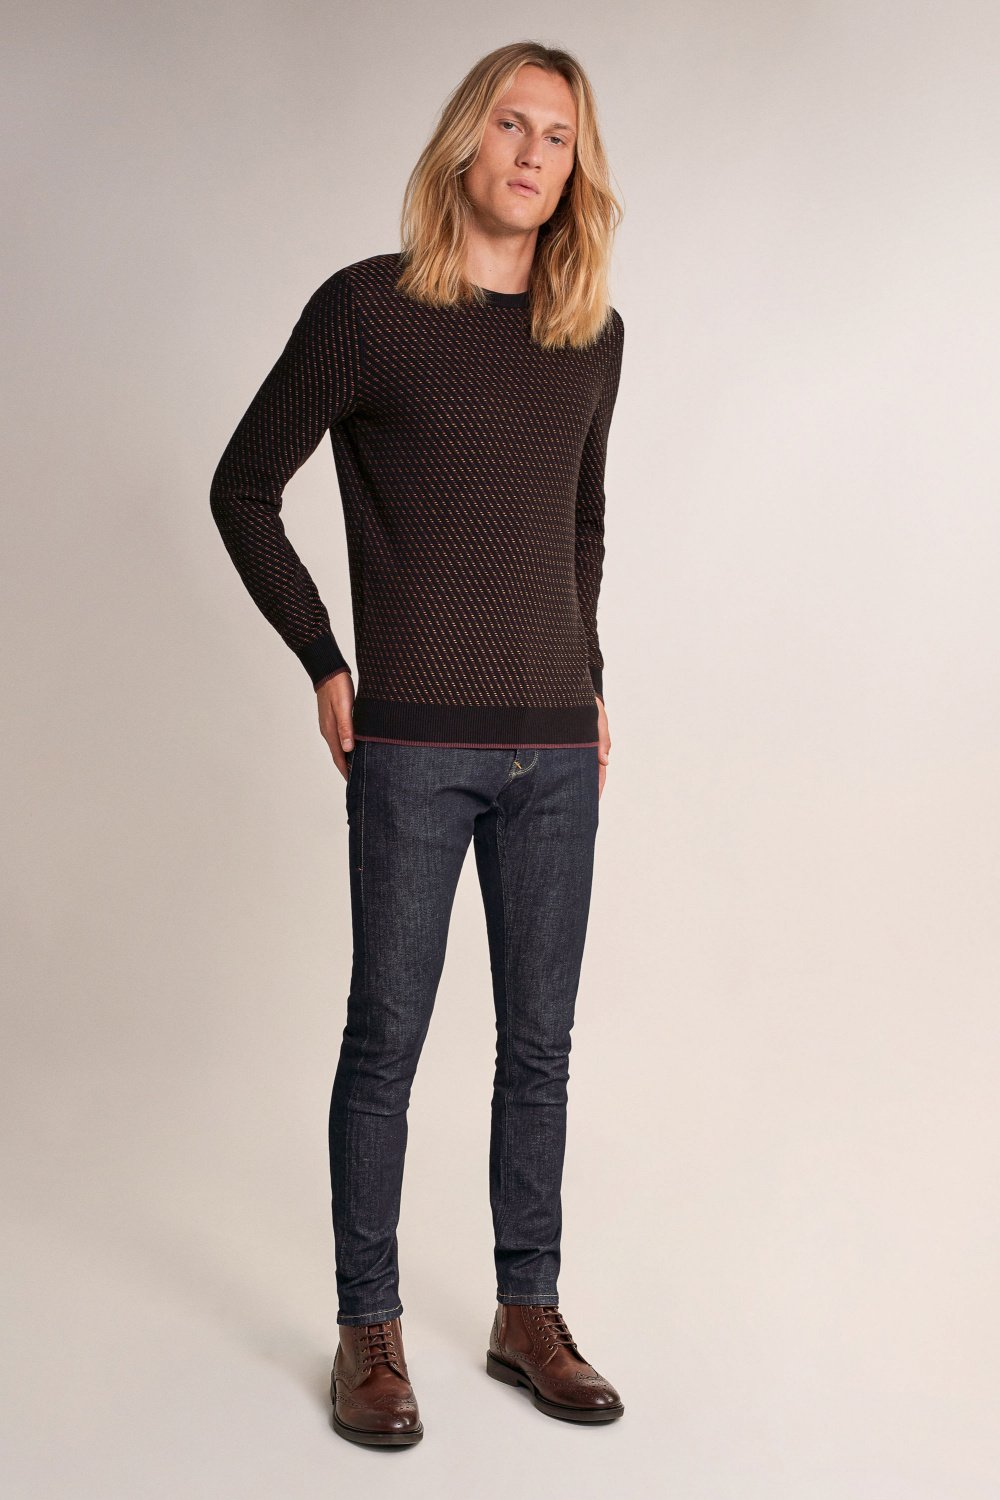 Thick sweater with detail - Salsa